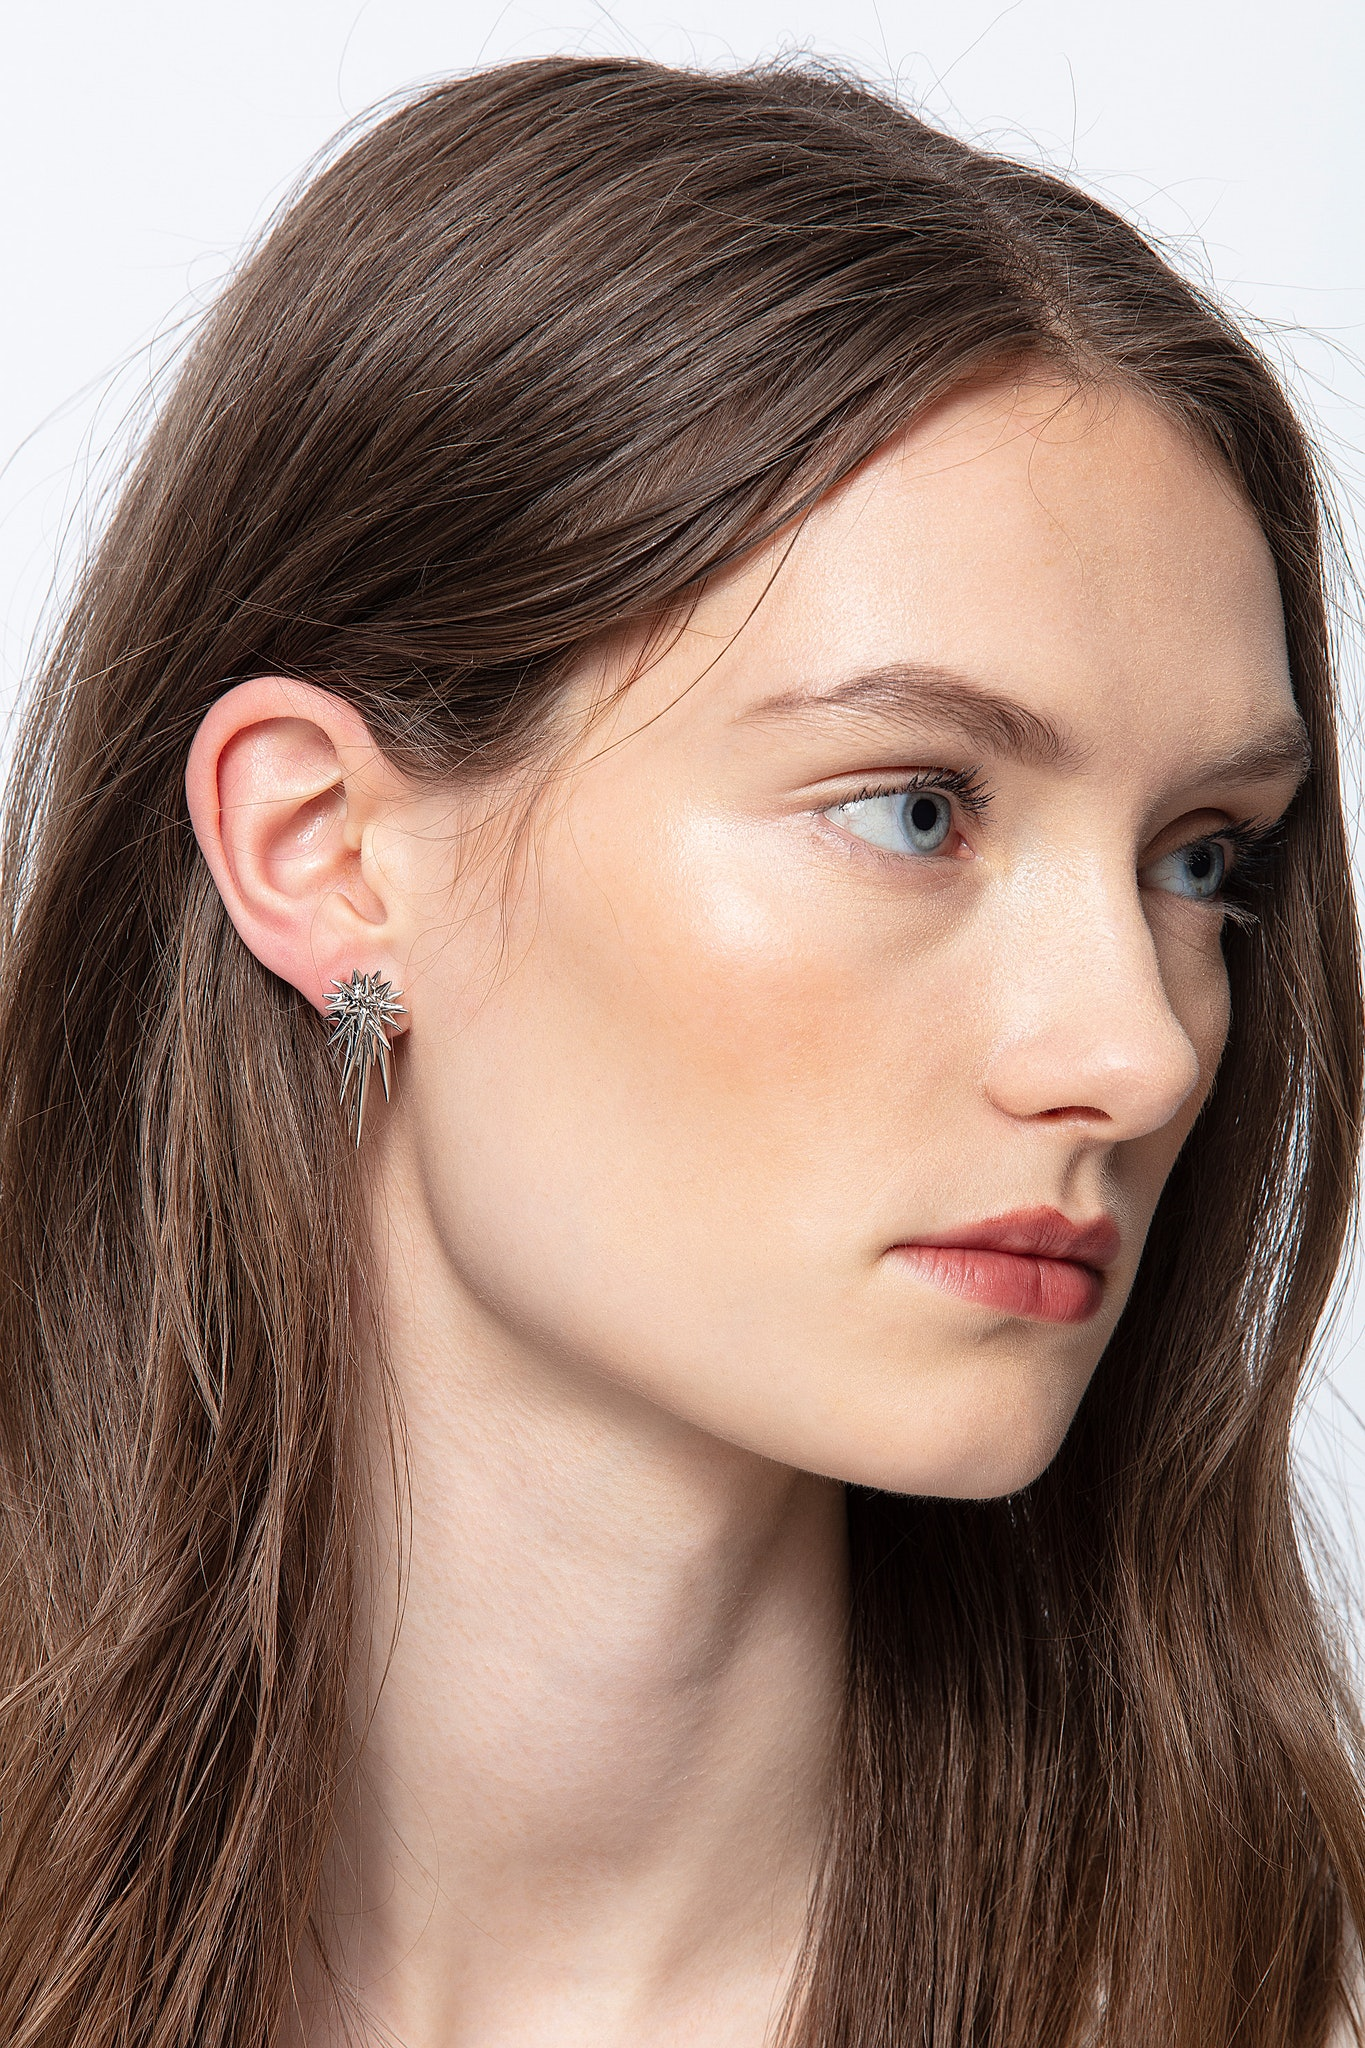 ZV x Cécil Comet Giant Earring